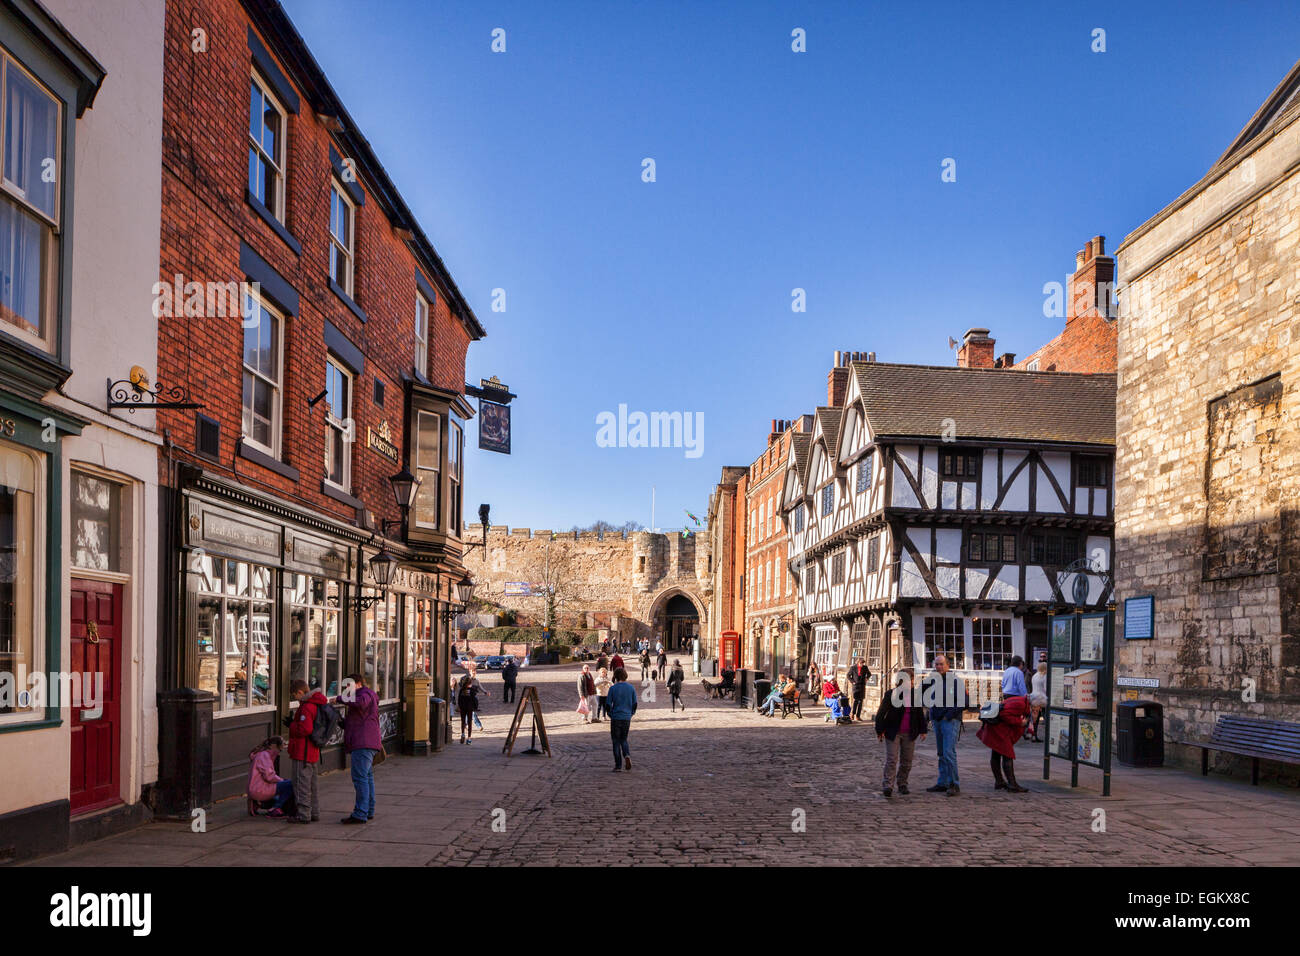 A view of the centre of Lincoln, Lincolnshire, England, UK, with Castle Hill and Exchequergate, the Magna Carta - Stock Image